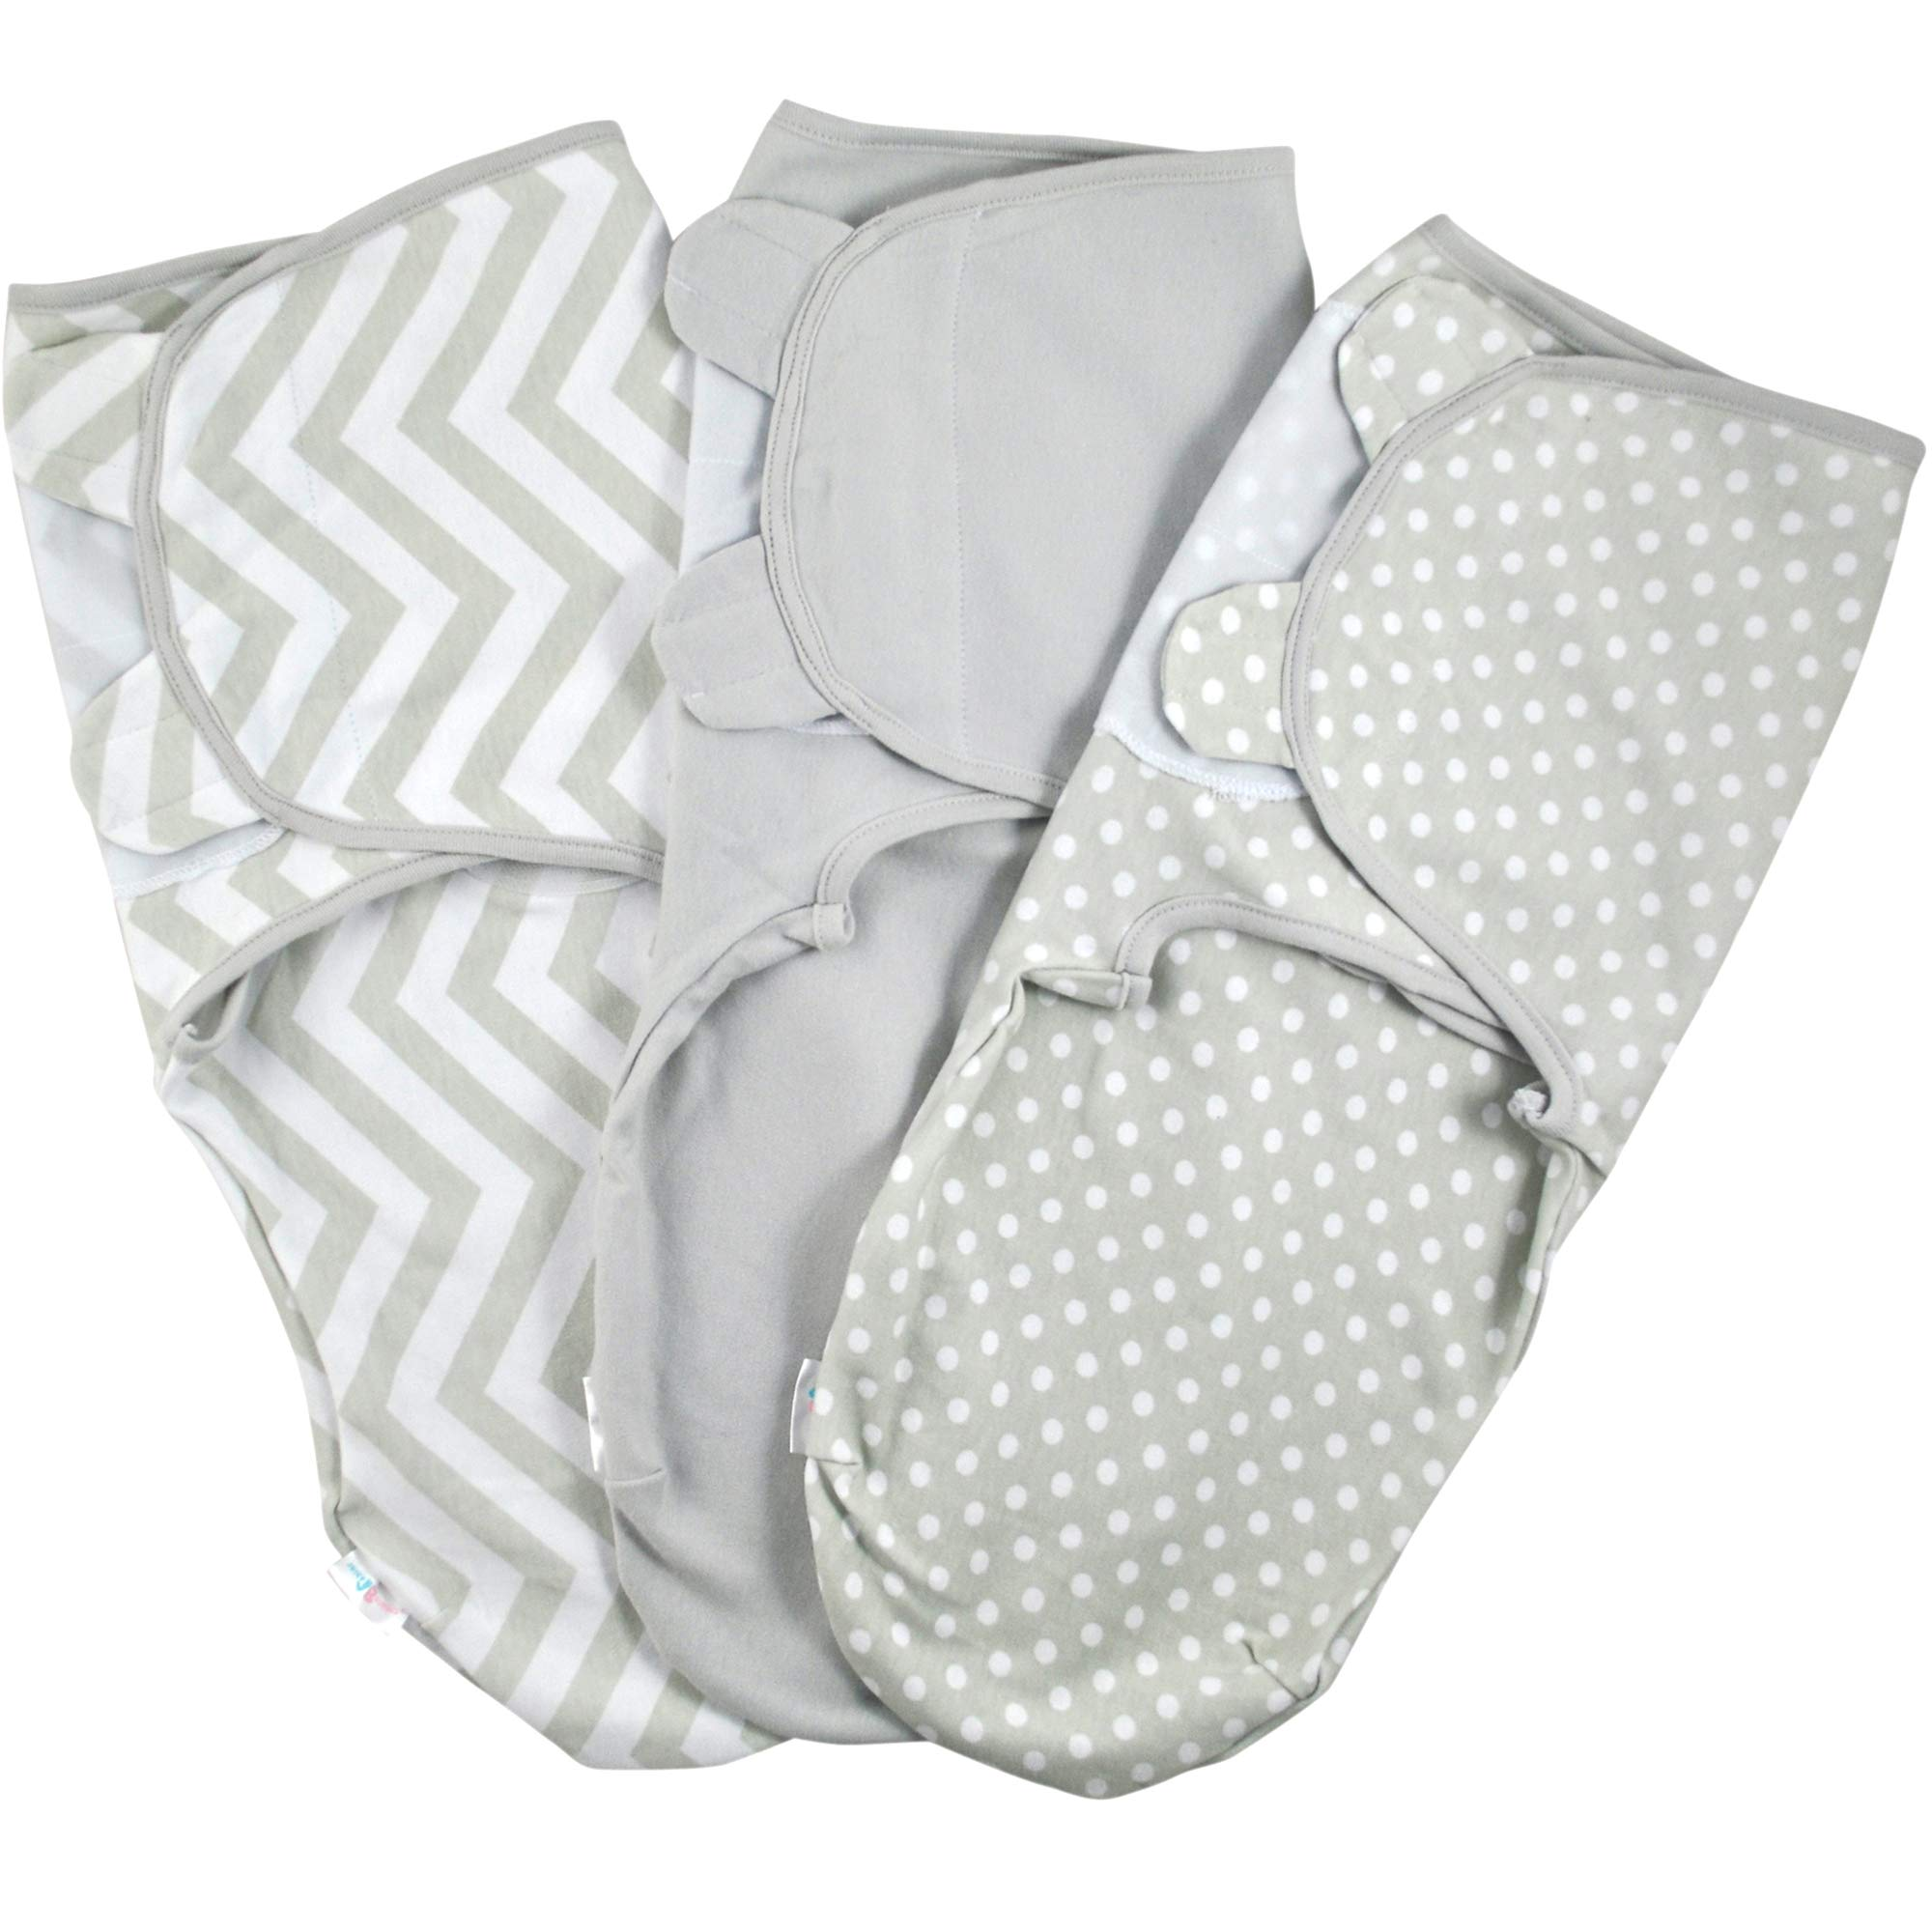 Baby Swaddle Wrap - Pack of 3 Swaddle Blankets - 100% Organic Cotton - Grey - 0-3 Months